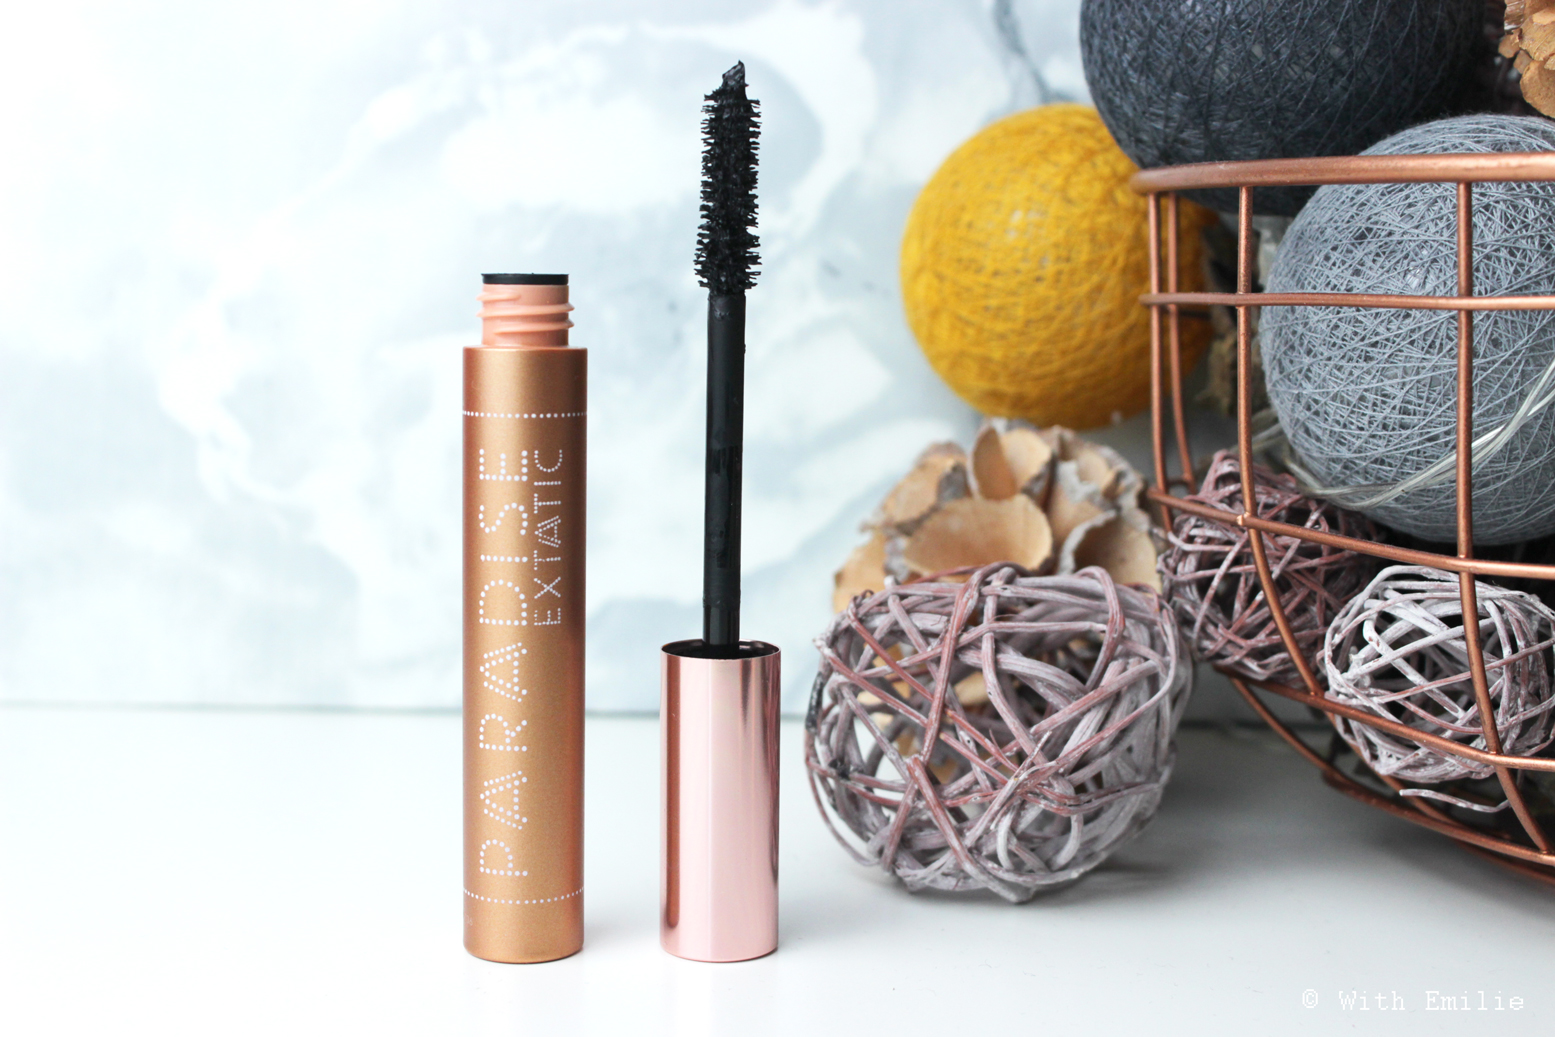 revue-review-paradise-extatic-mascara-loreal-makeup-withemilie.com-1